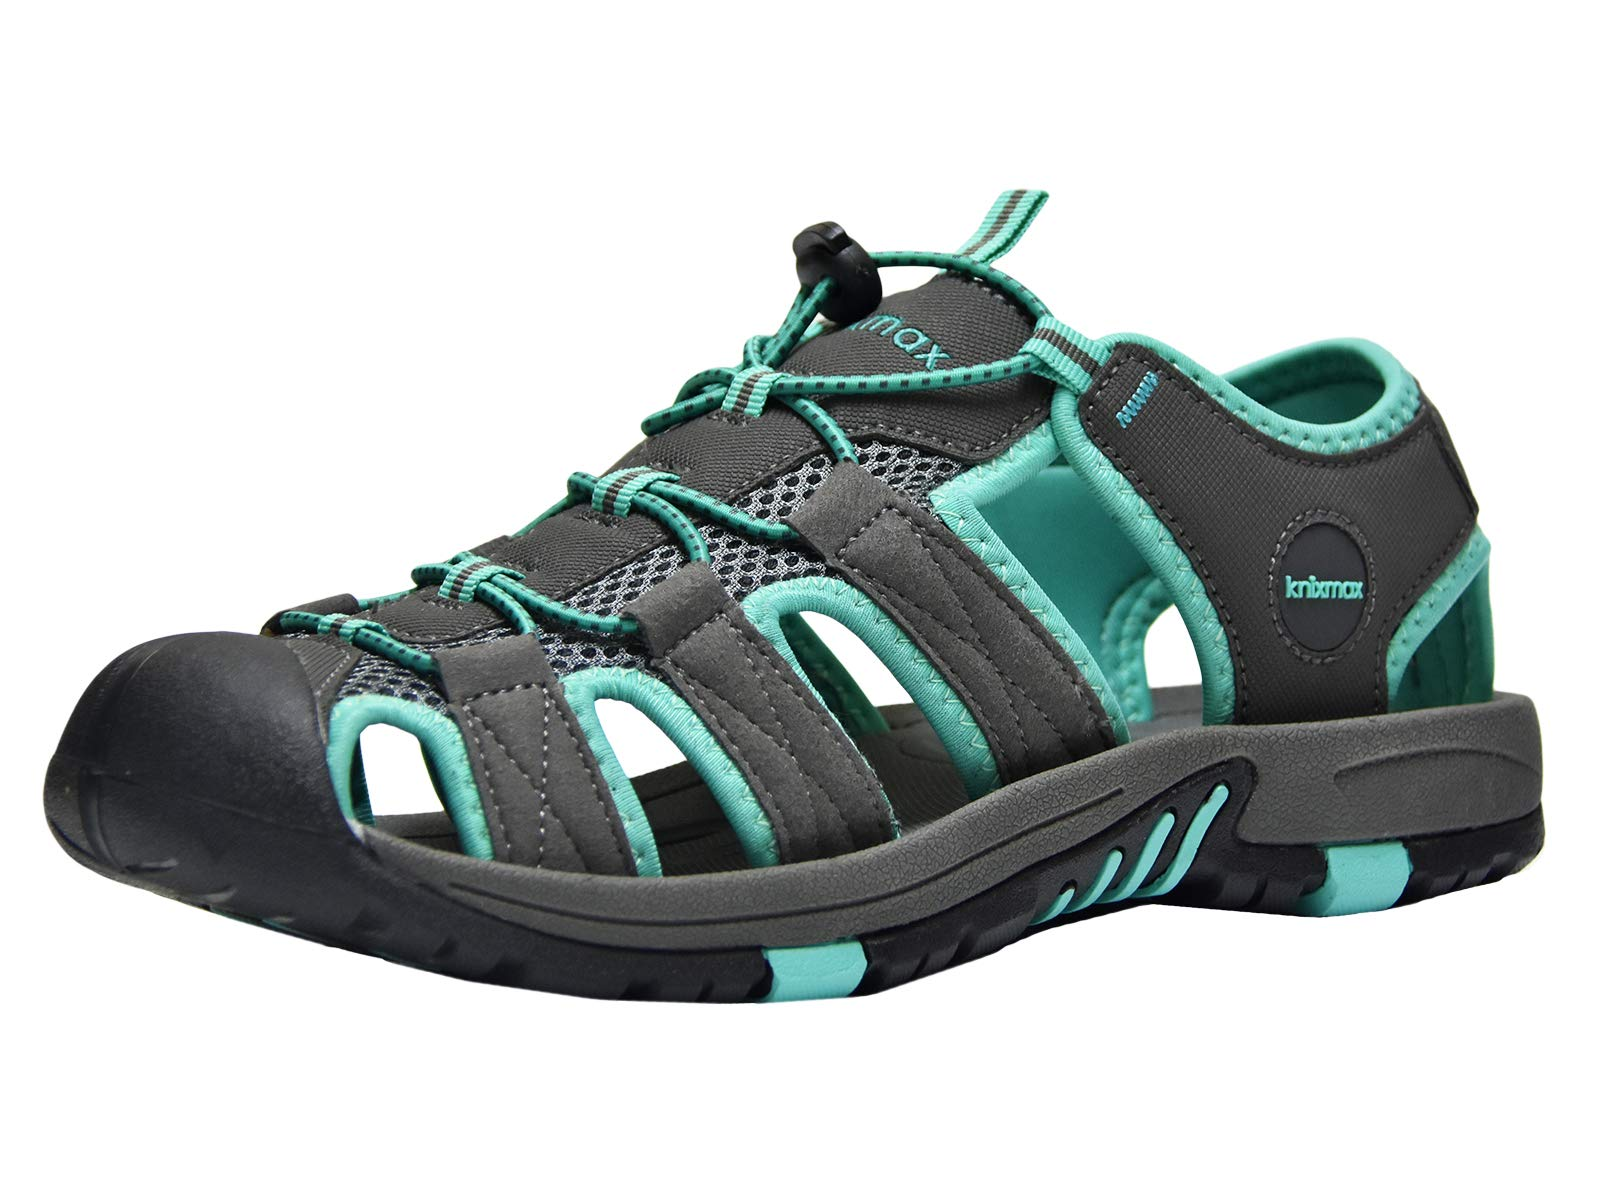 Knixmax Men's Closed Toe Sport Sandals Breathable Water Shoes Athletic Summer Sandal for Hiking Gardening Beach Outdoor